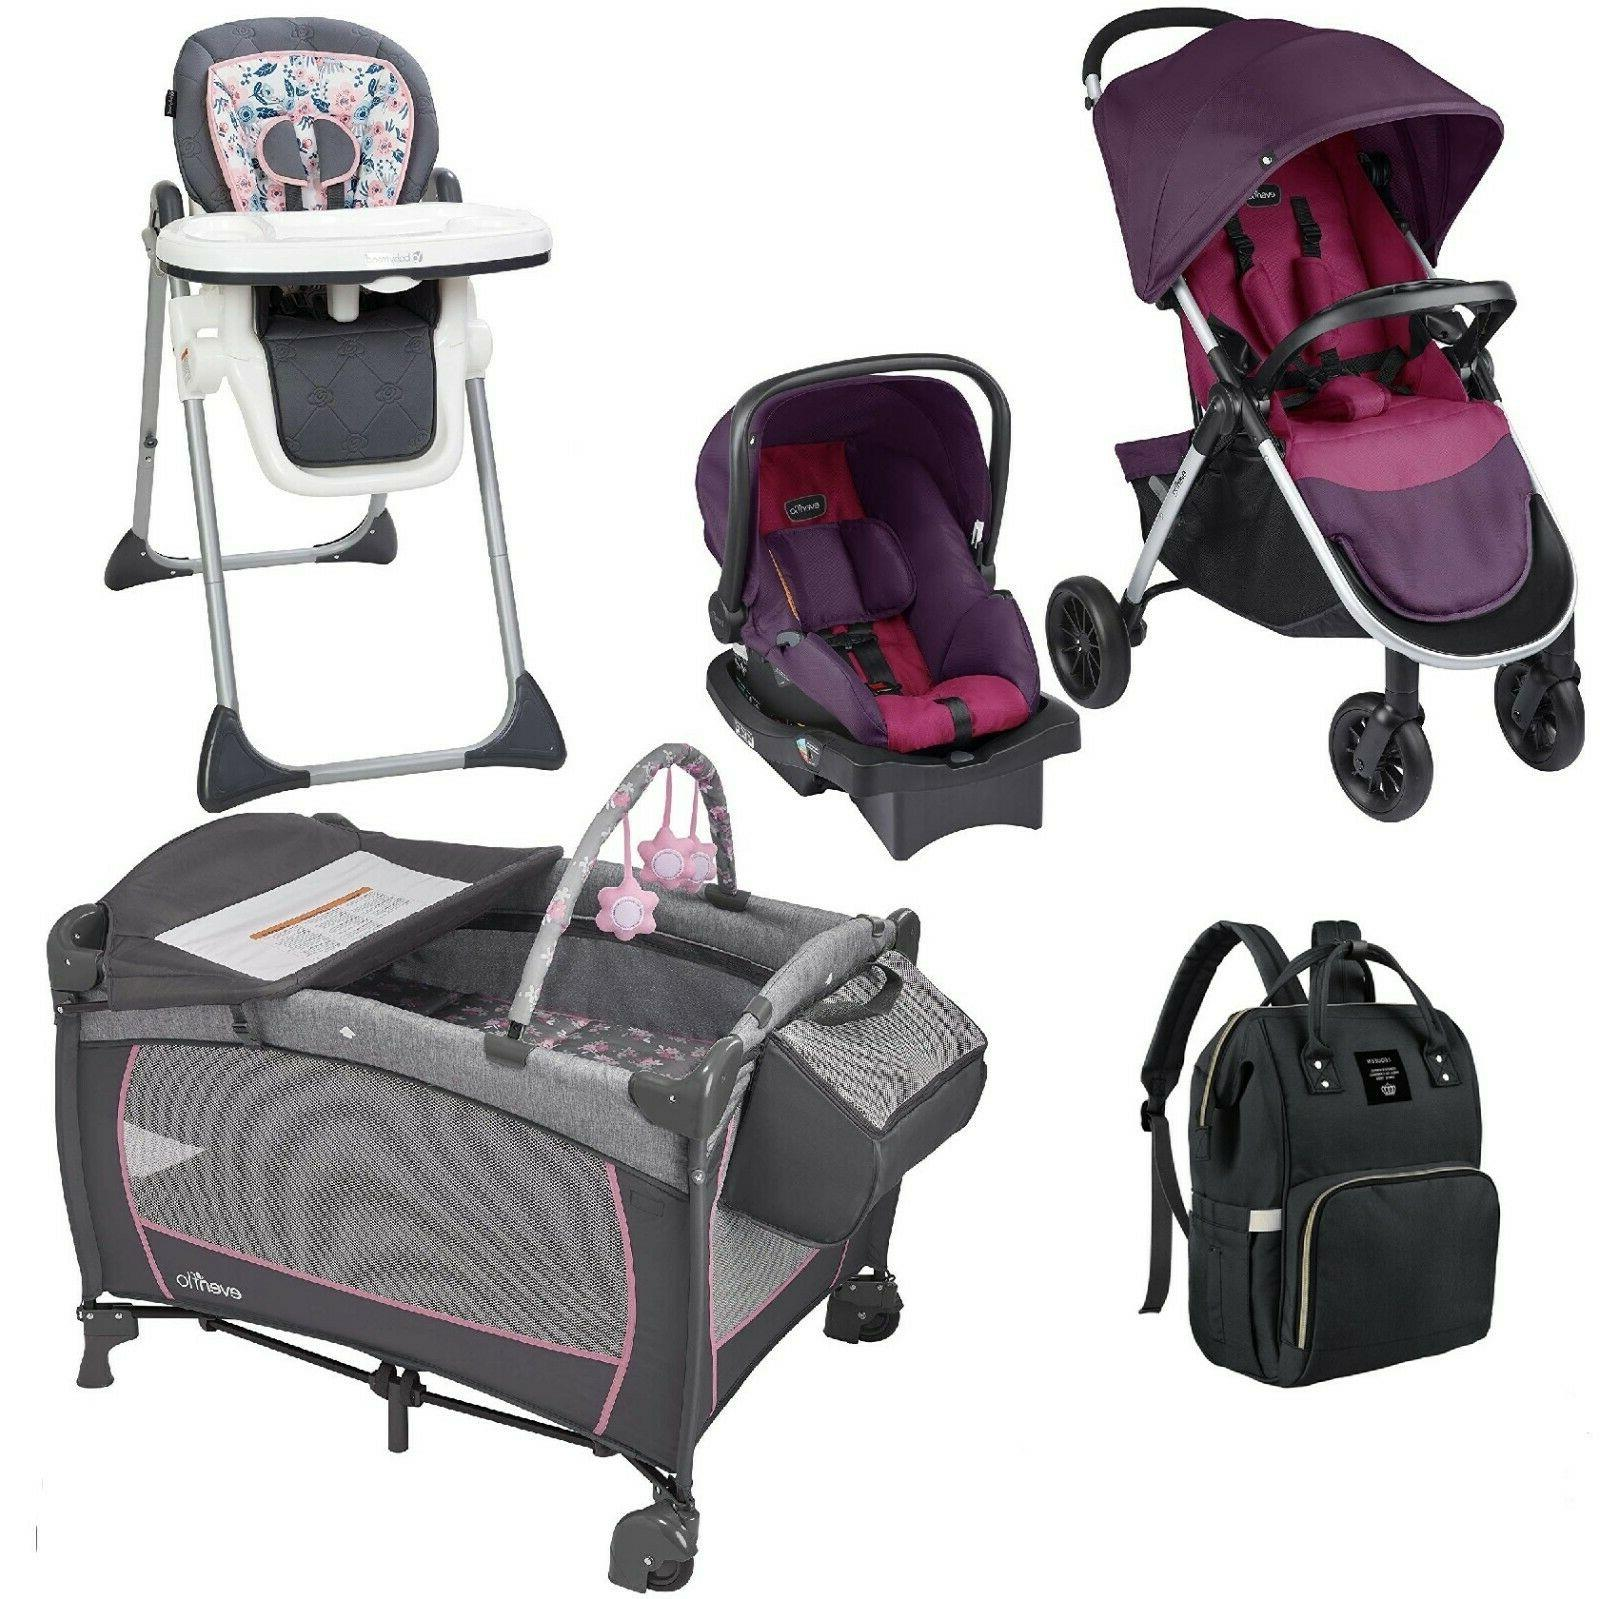 Portable Playard Stroller with Car Seat 3 in 1 High Chair Di